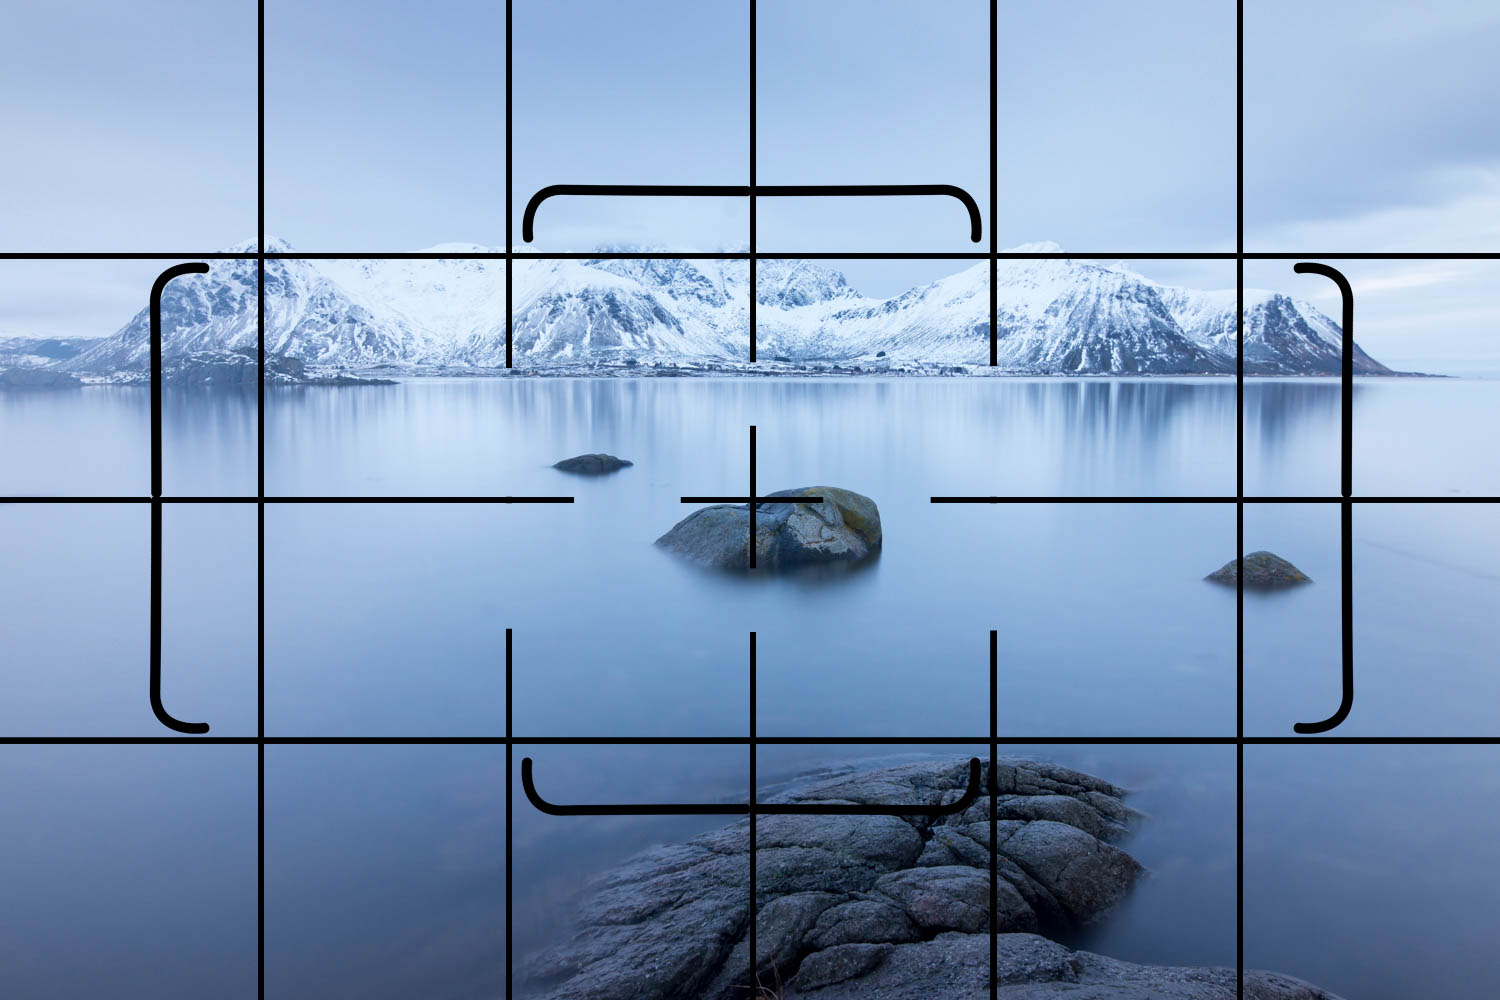 Lines on a digital camera viewfinder grid to level up the horizon in a scene